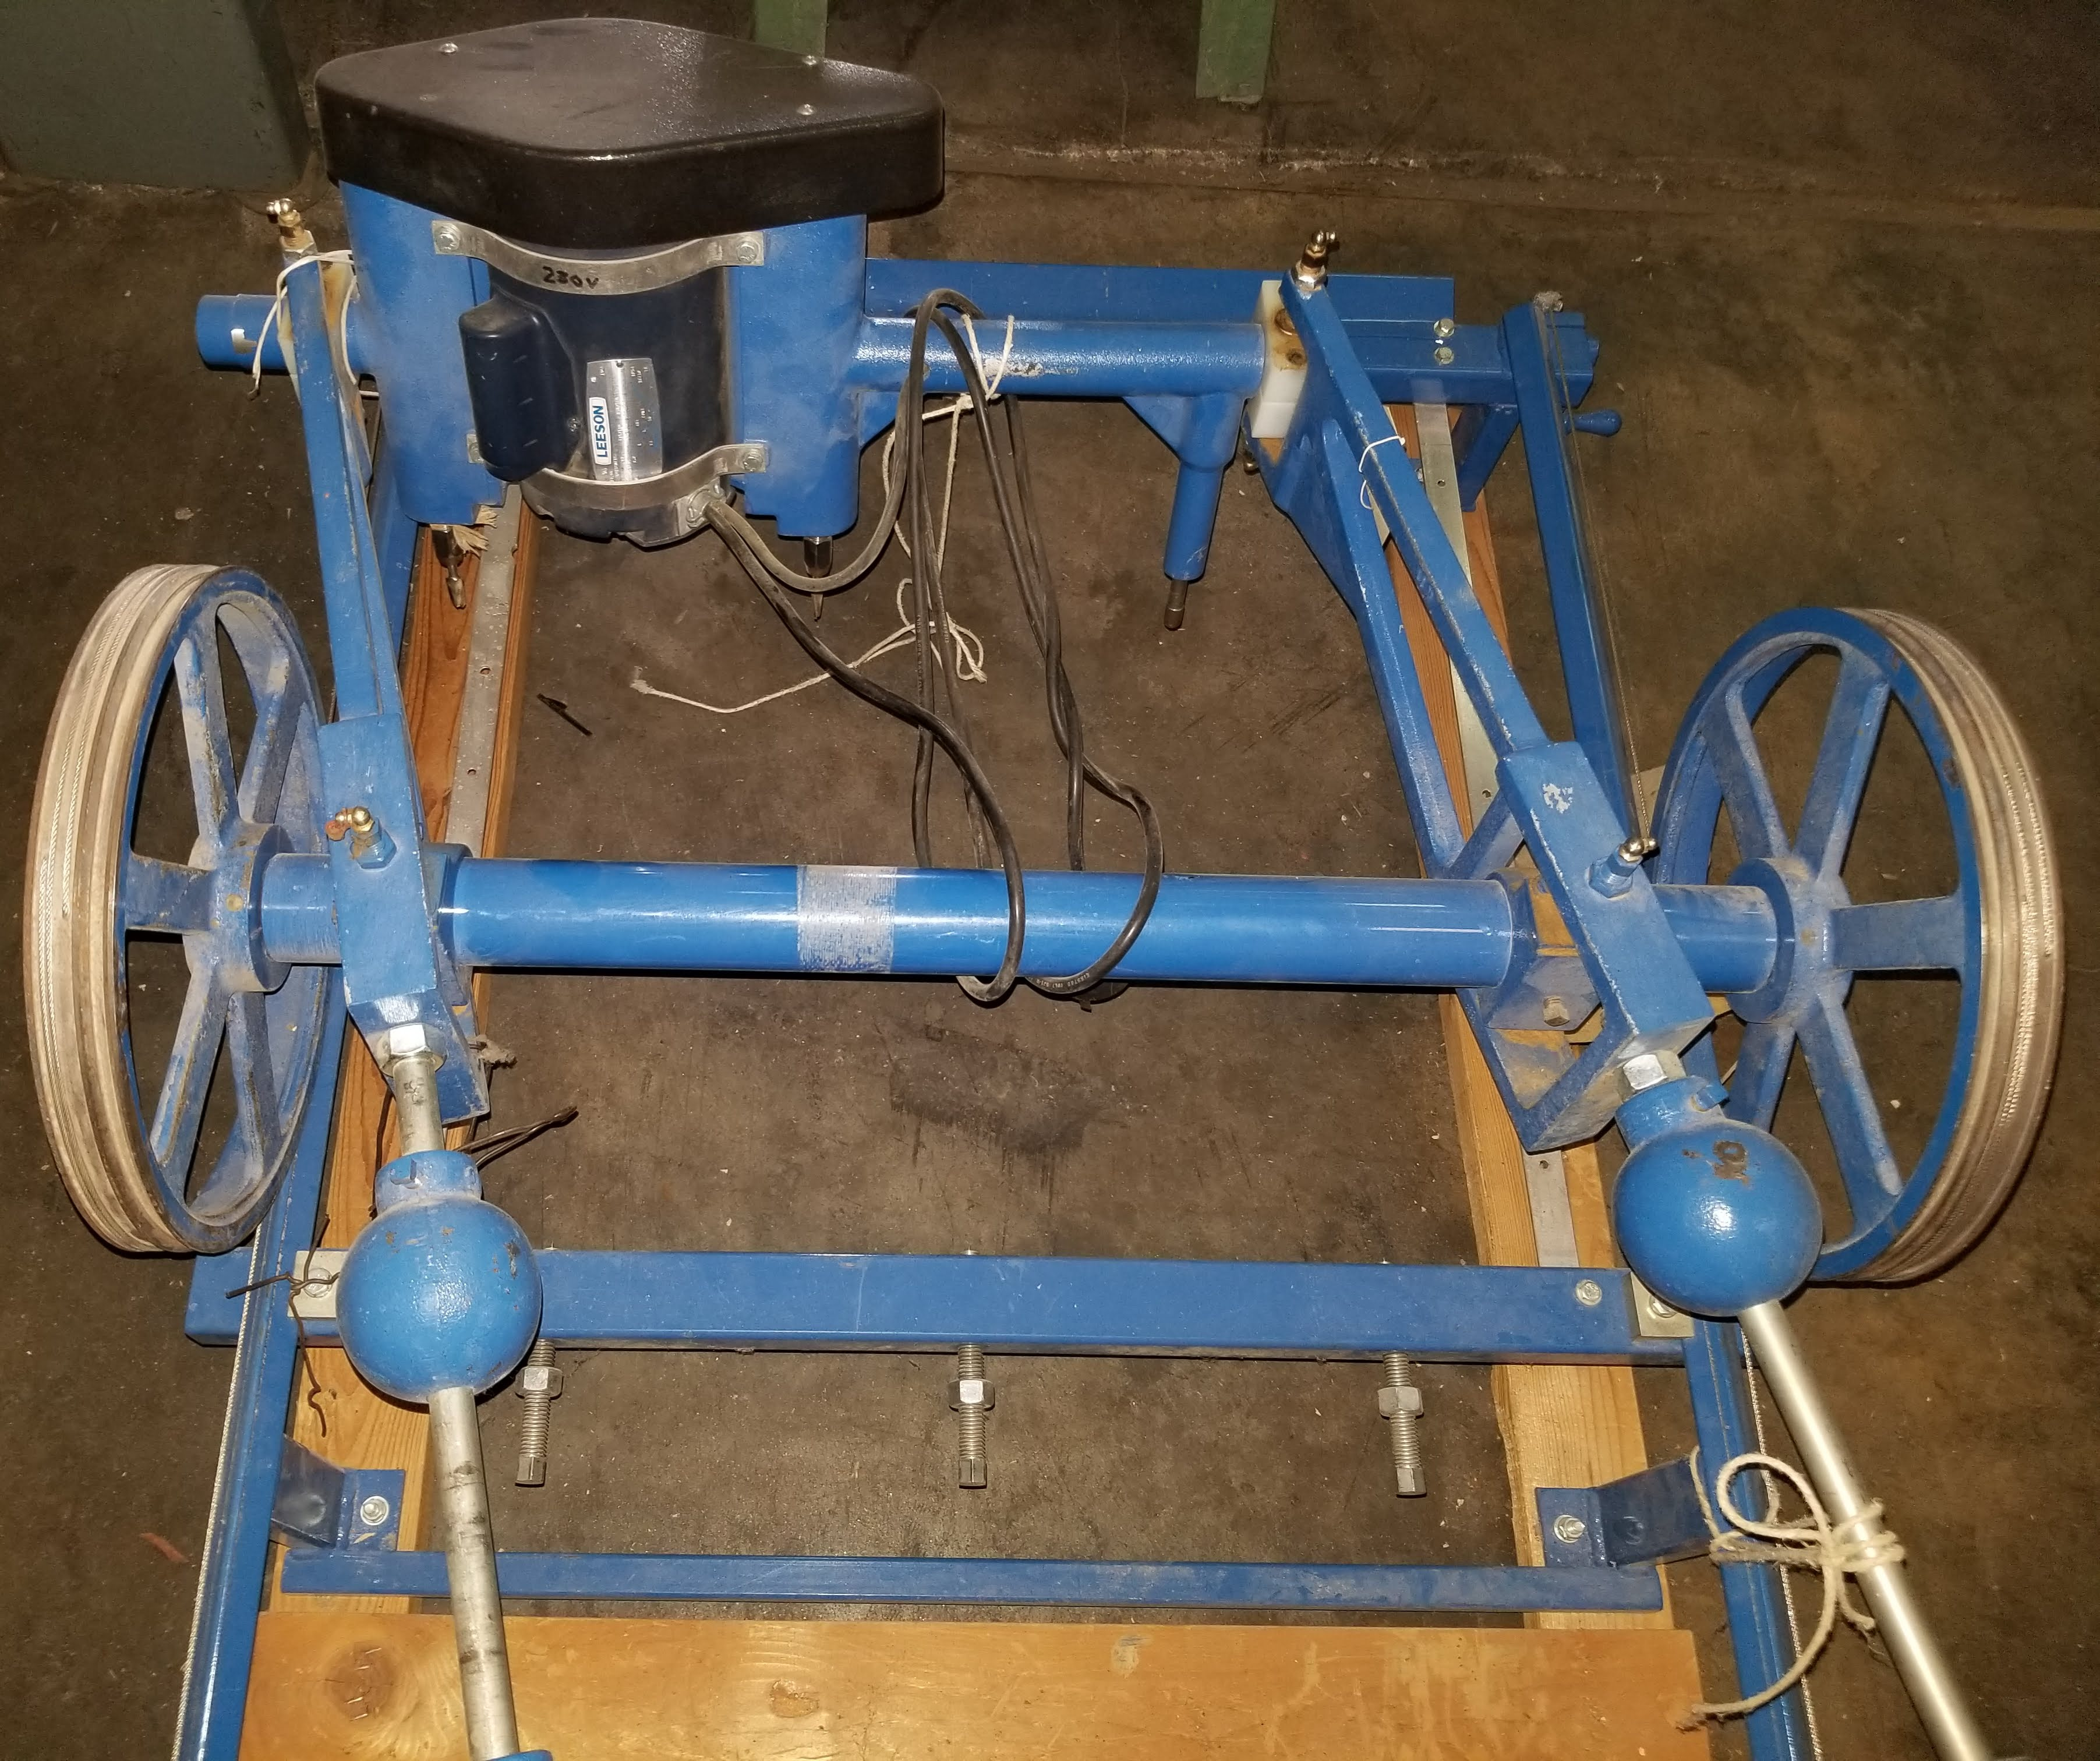 Terrco Wood Carving Machine, Model # Kstar, Type #5060, Two spindle table top mount, manual - Image 4 of 5